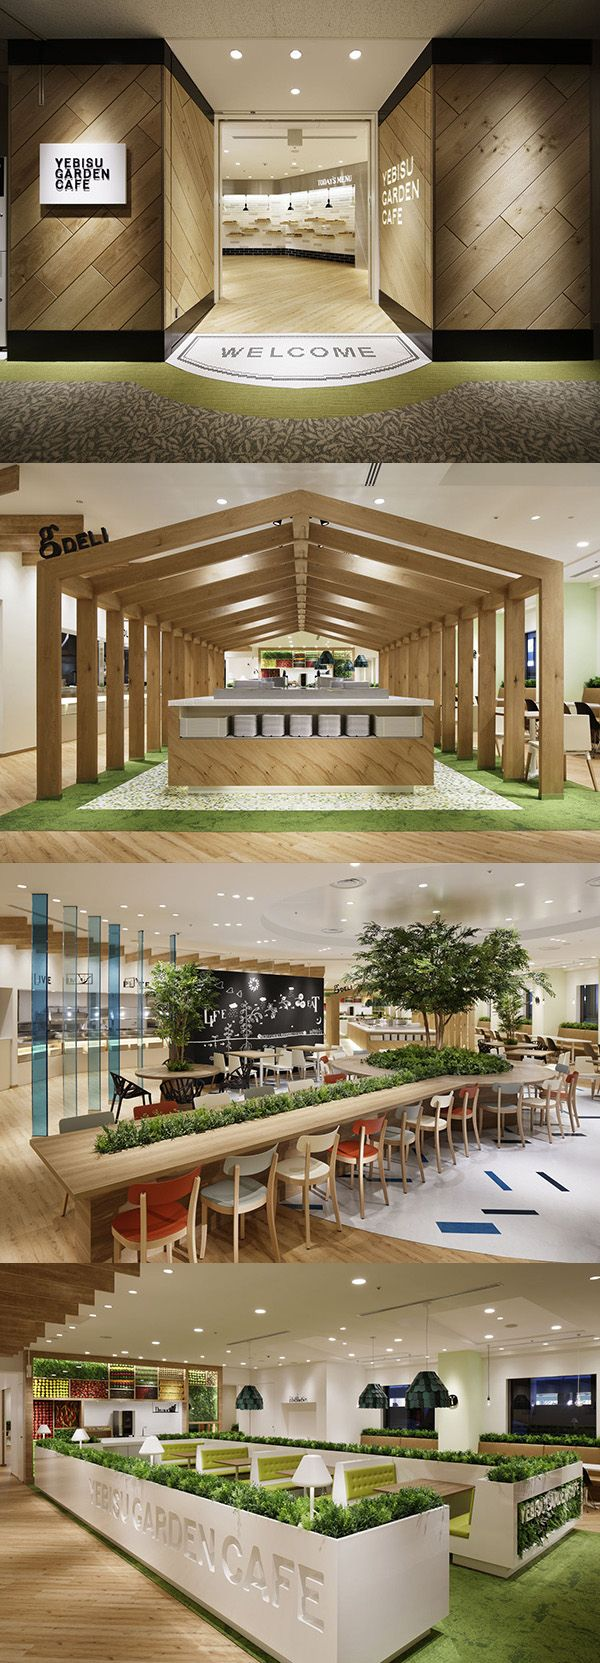 YEBISU GARDEN CAFE, now this is an interesting idea. definitely looks well put together